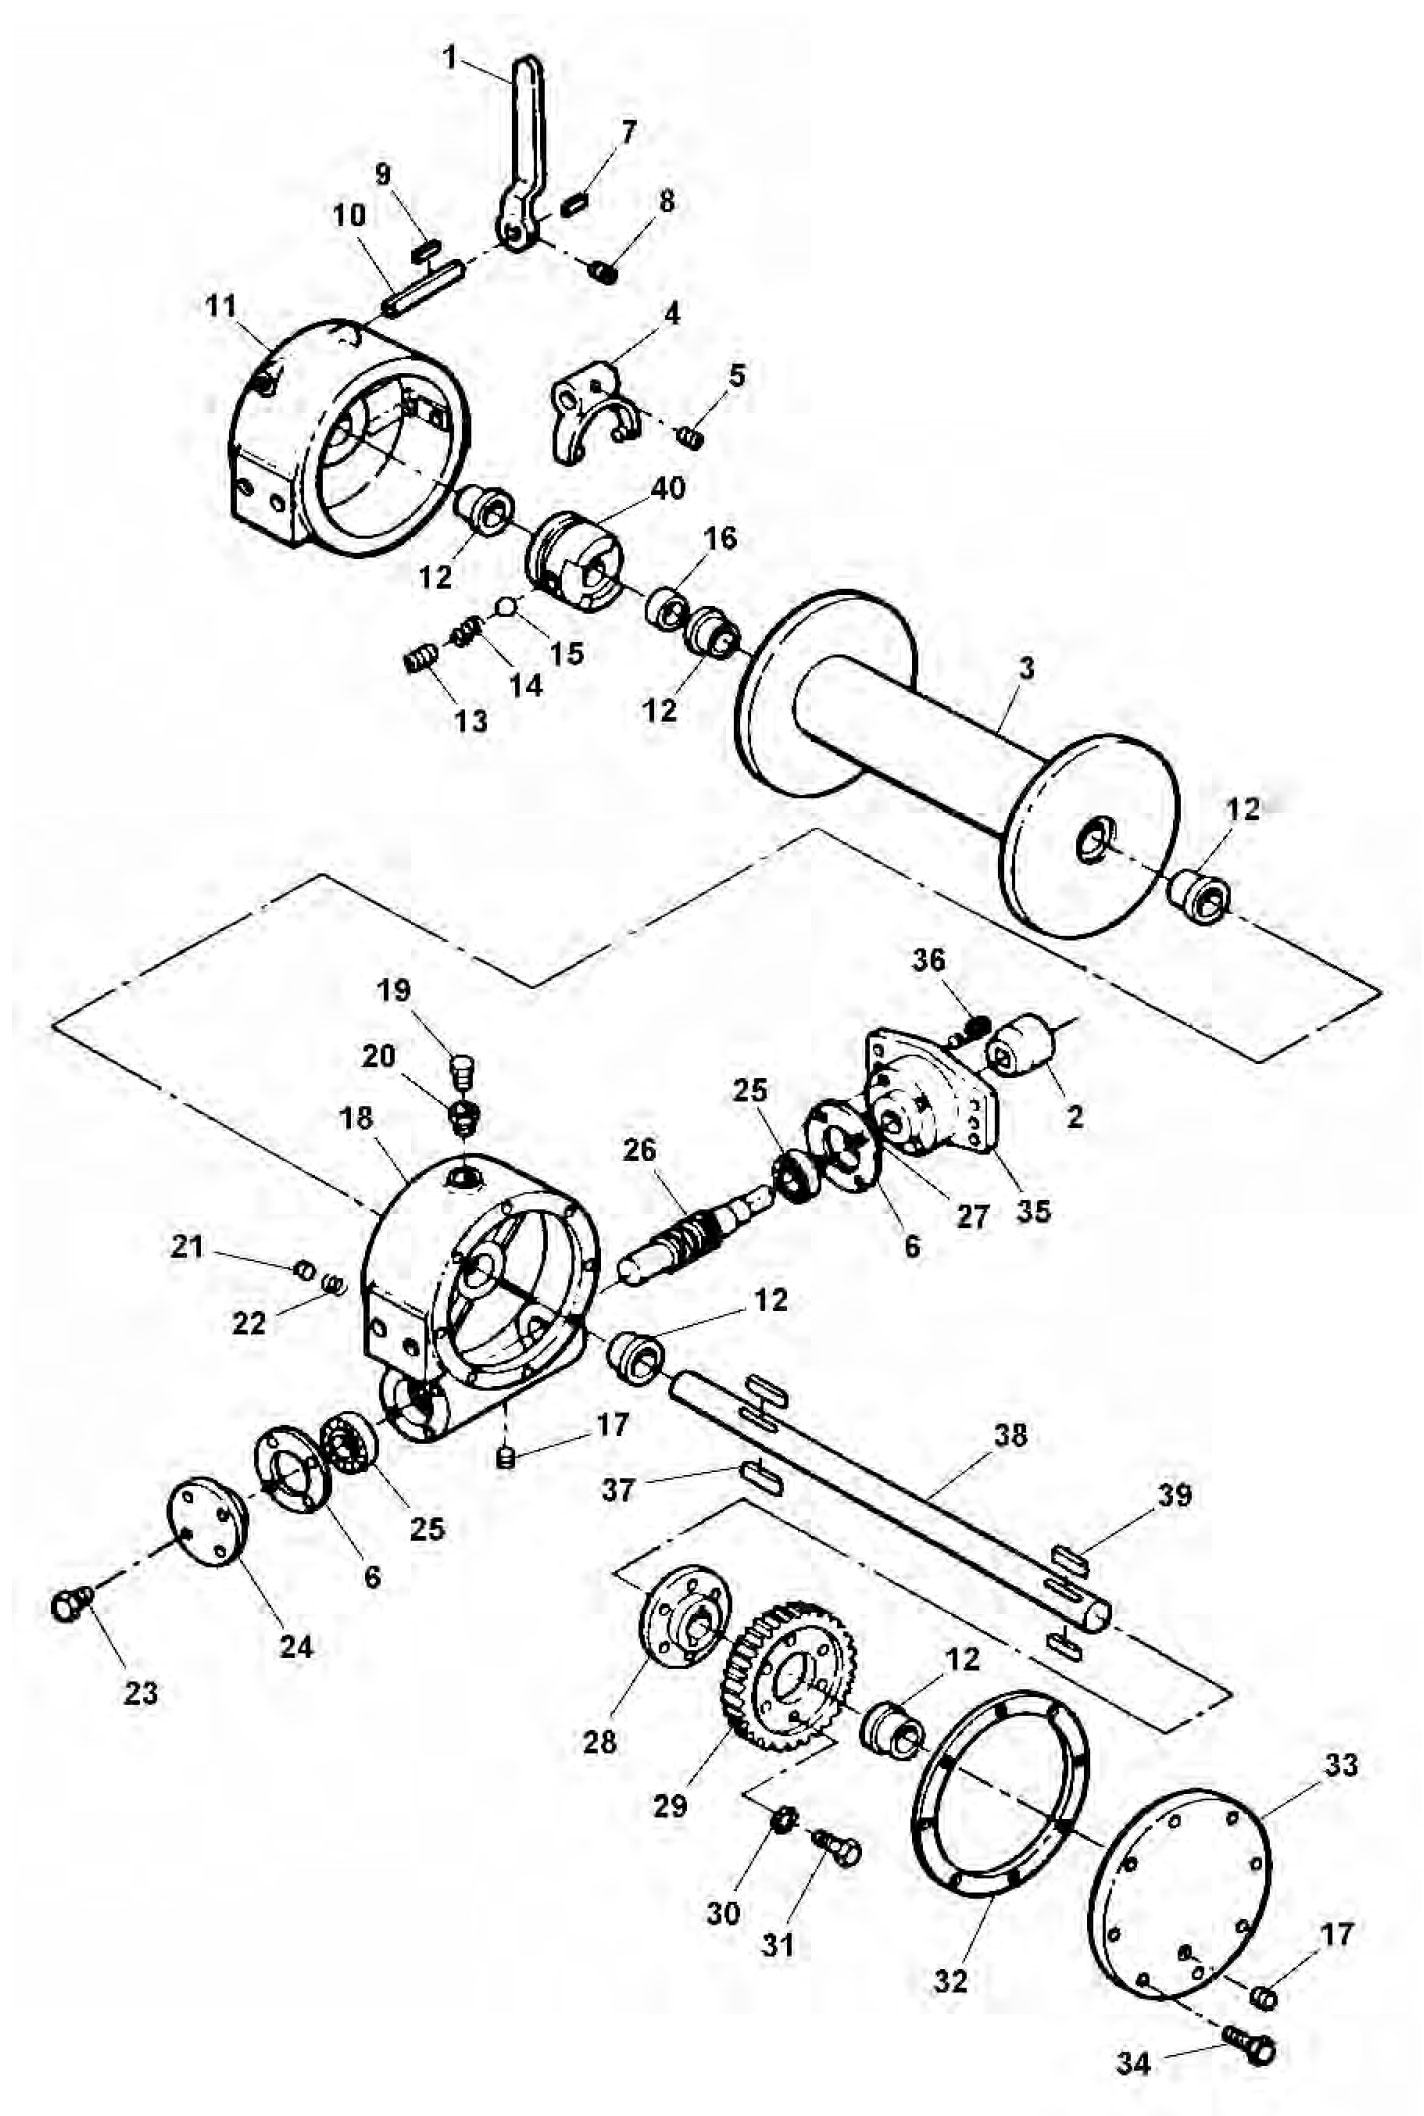 hight resolution of related with old ramsey winch wiring diagram